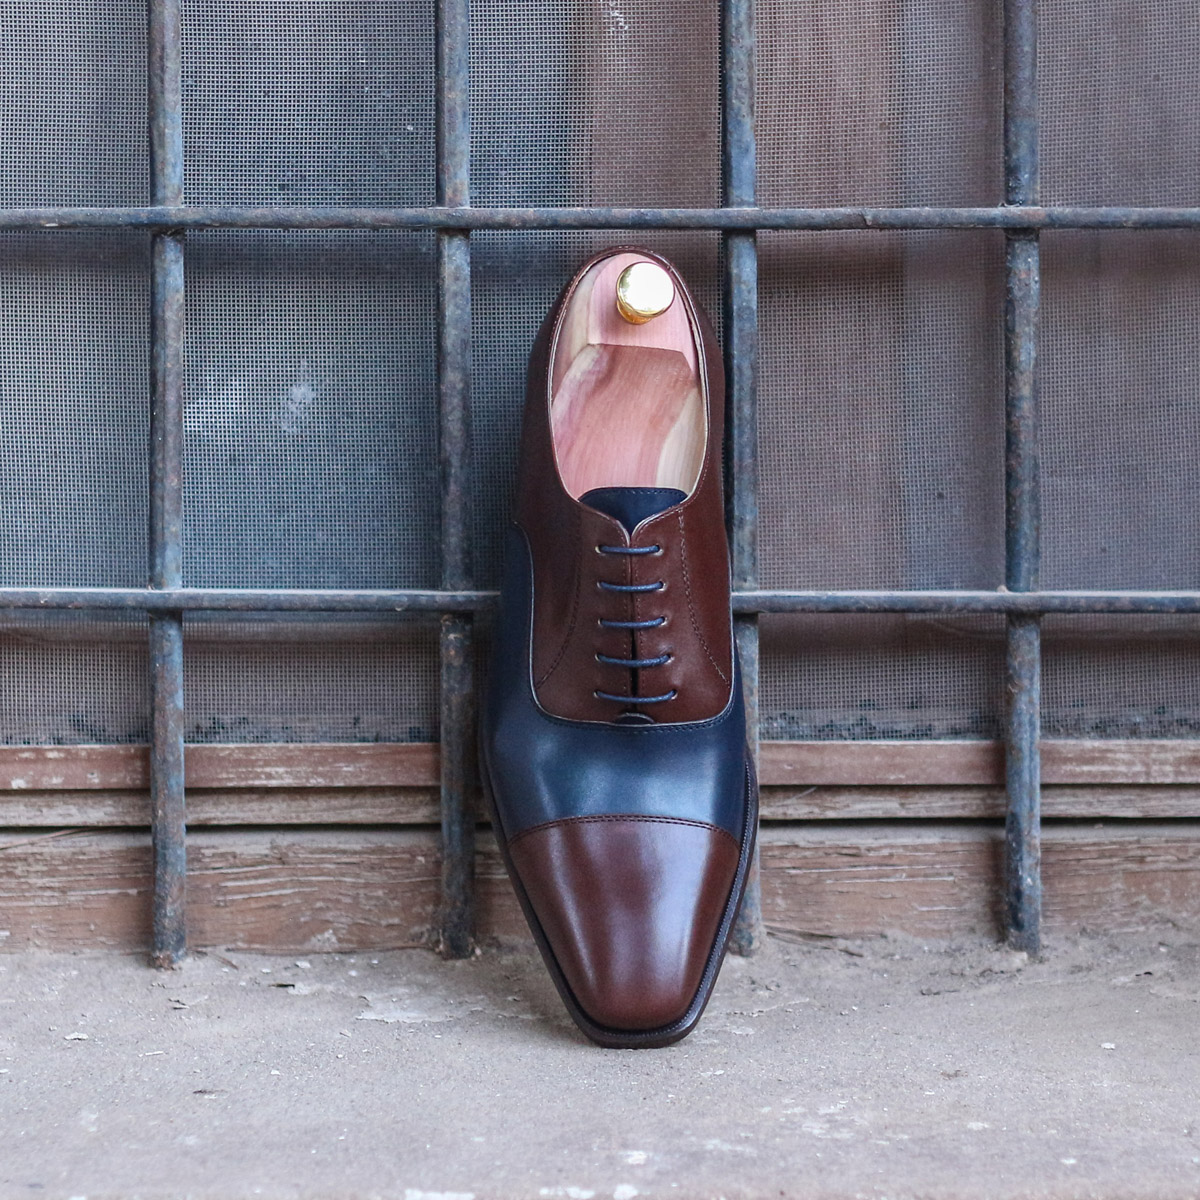 Oxford  dark brown painted calf + navy painted calf : 240€